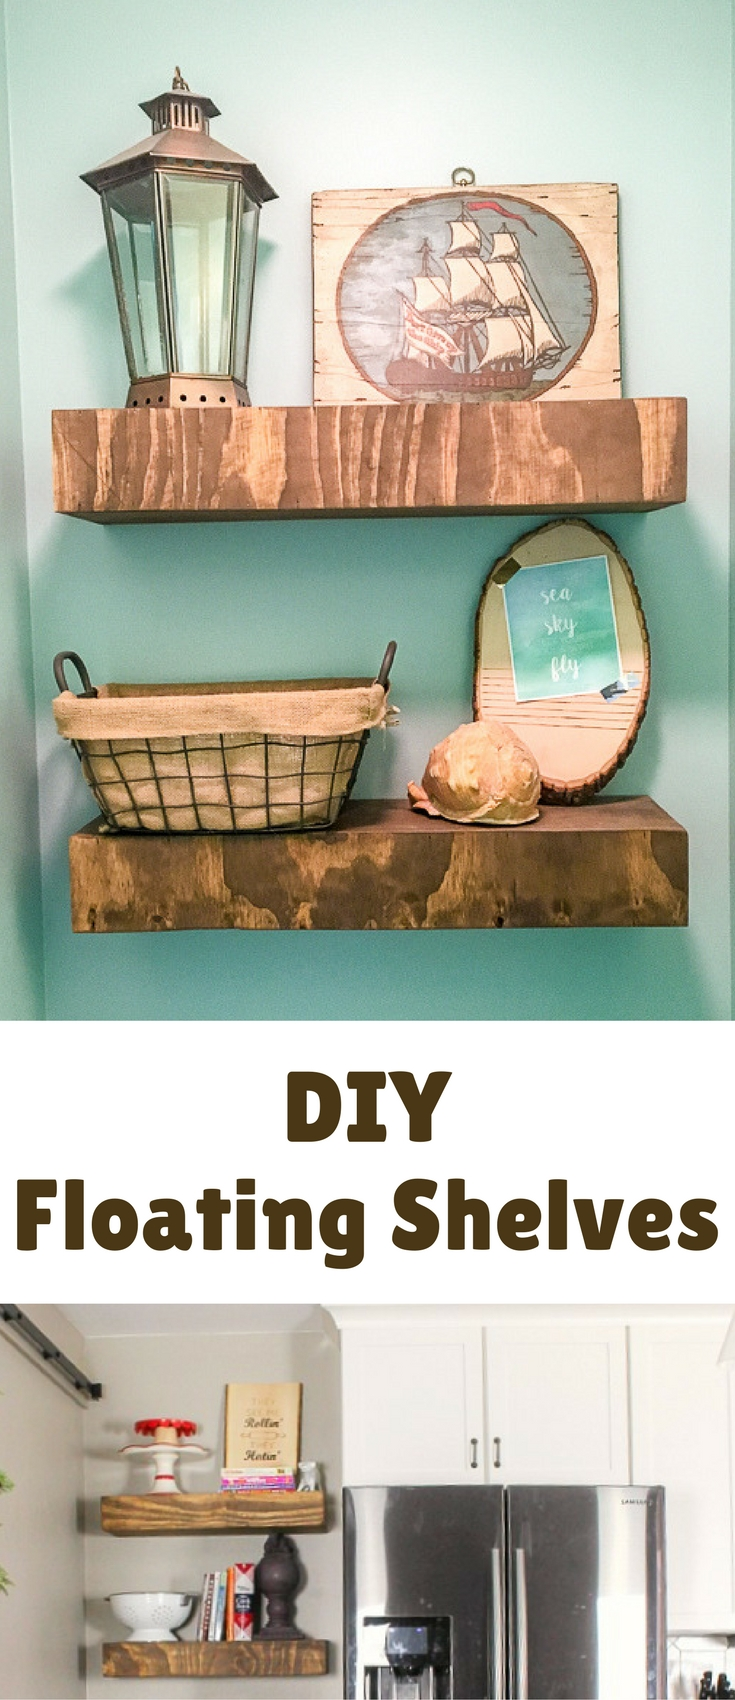 The first project I wanted to share is probably also one of the easiest for you to replicate- How to Build Floating Shelves. We actually first built these for our powder room (that was part of our mudroom renovation) and liked them so much that we decided to add them to our kitchen as well!